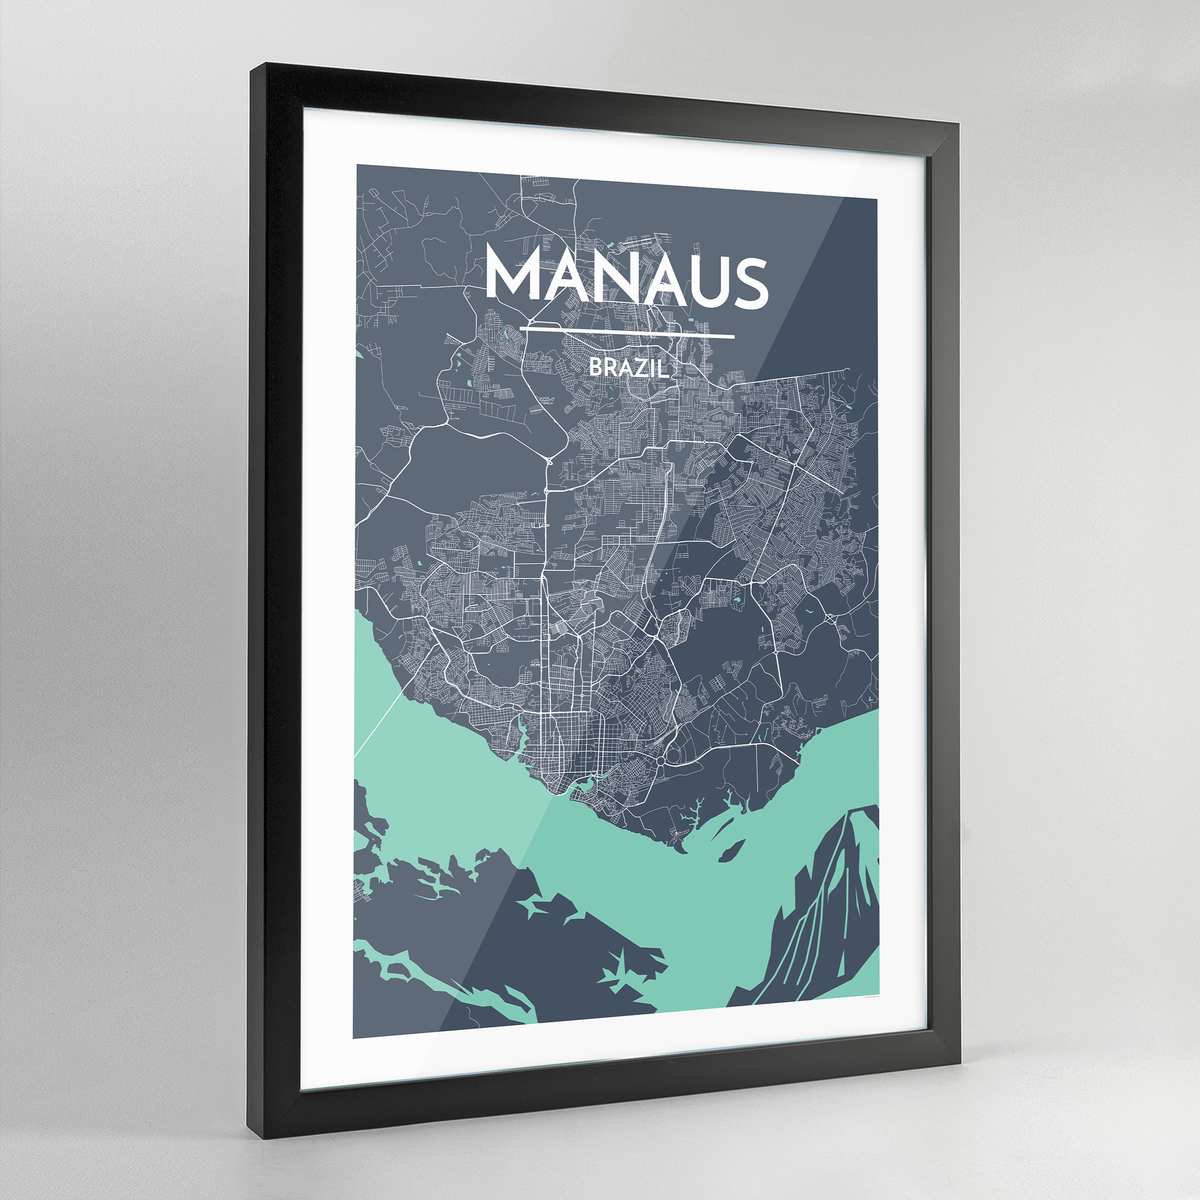 Framed Manaus City Map Art Print - Point Two Design